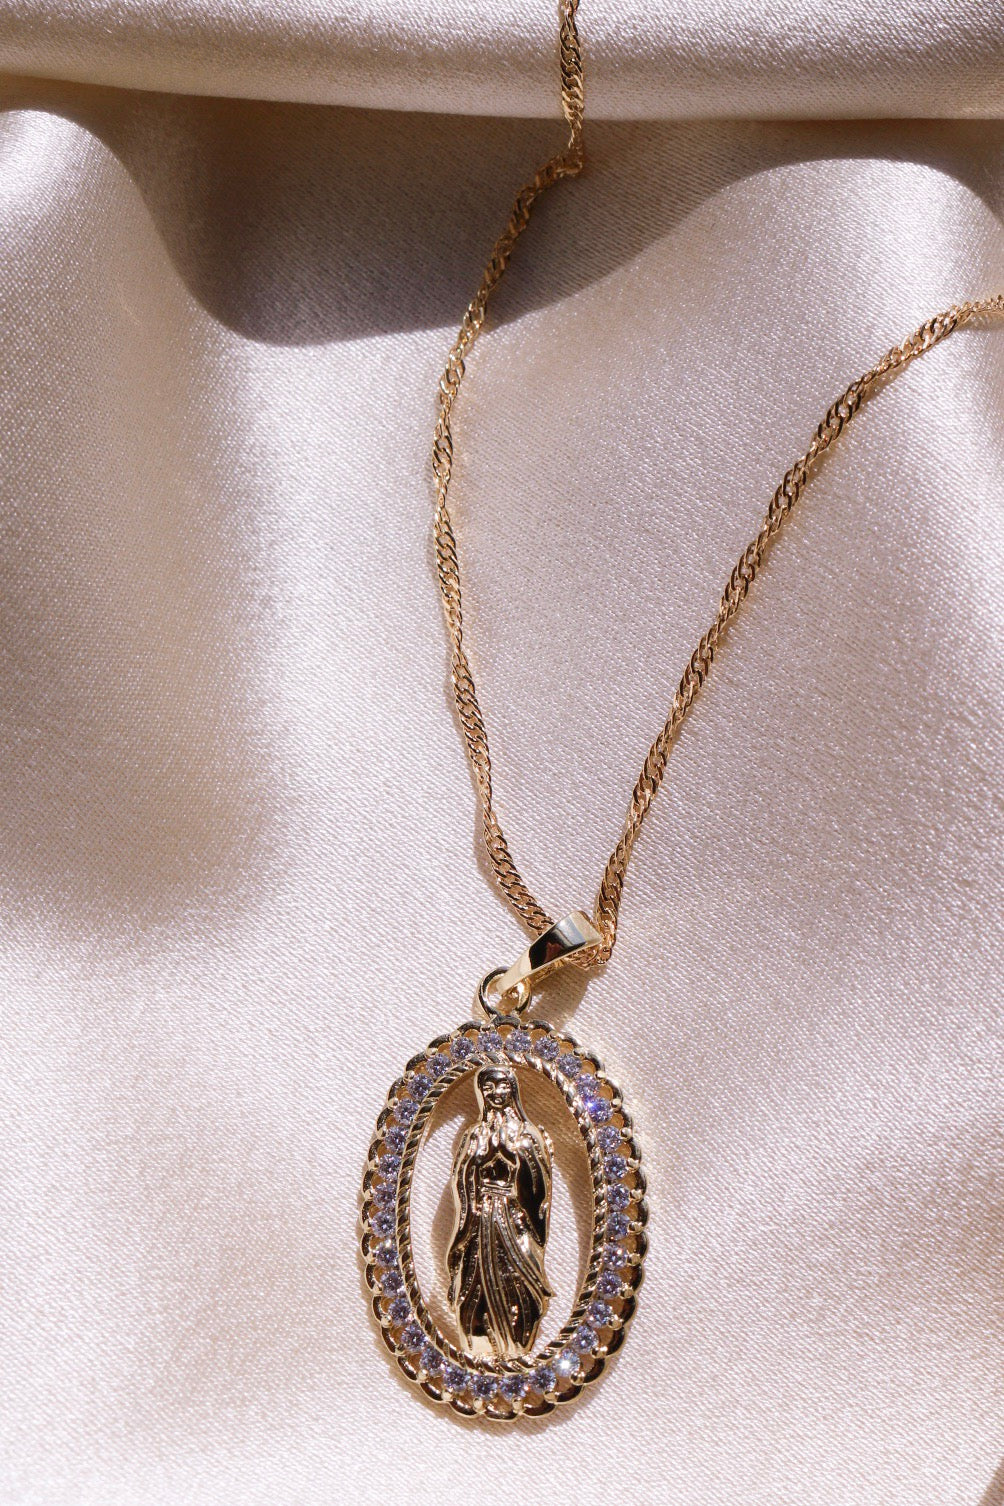 Faith Necklace - Gold Filled